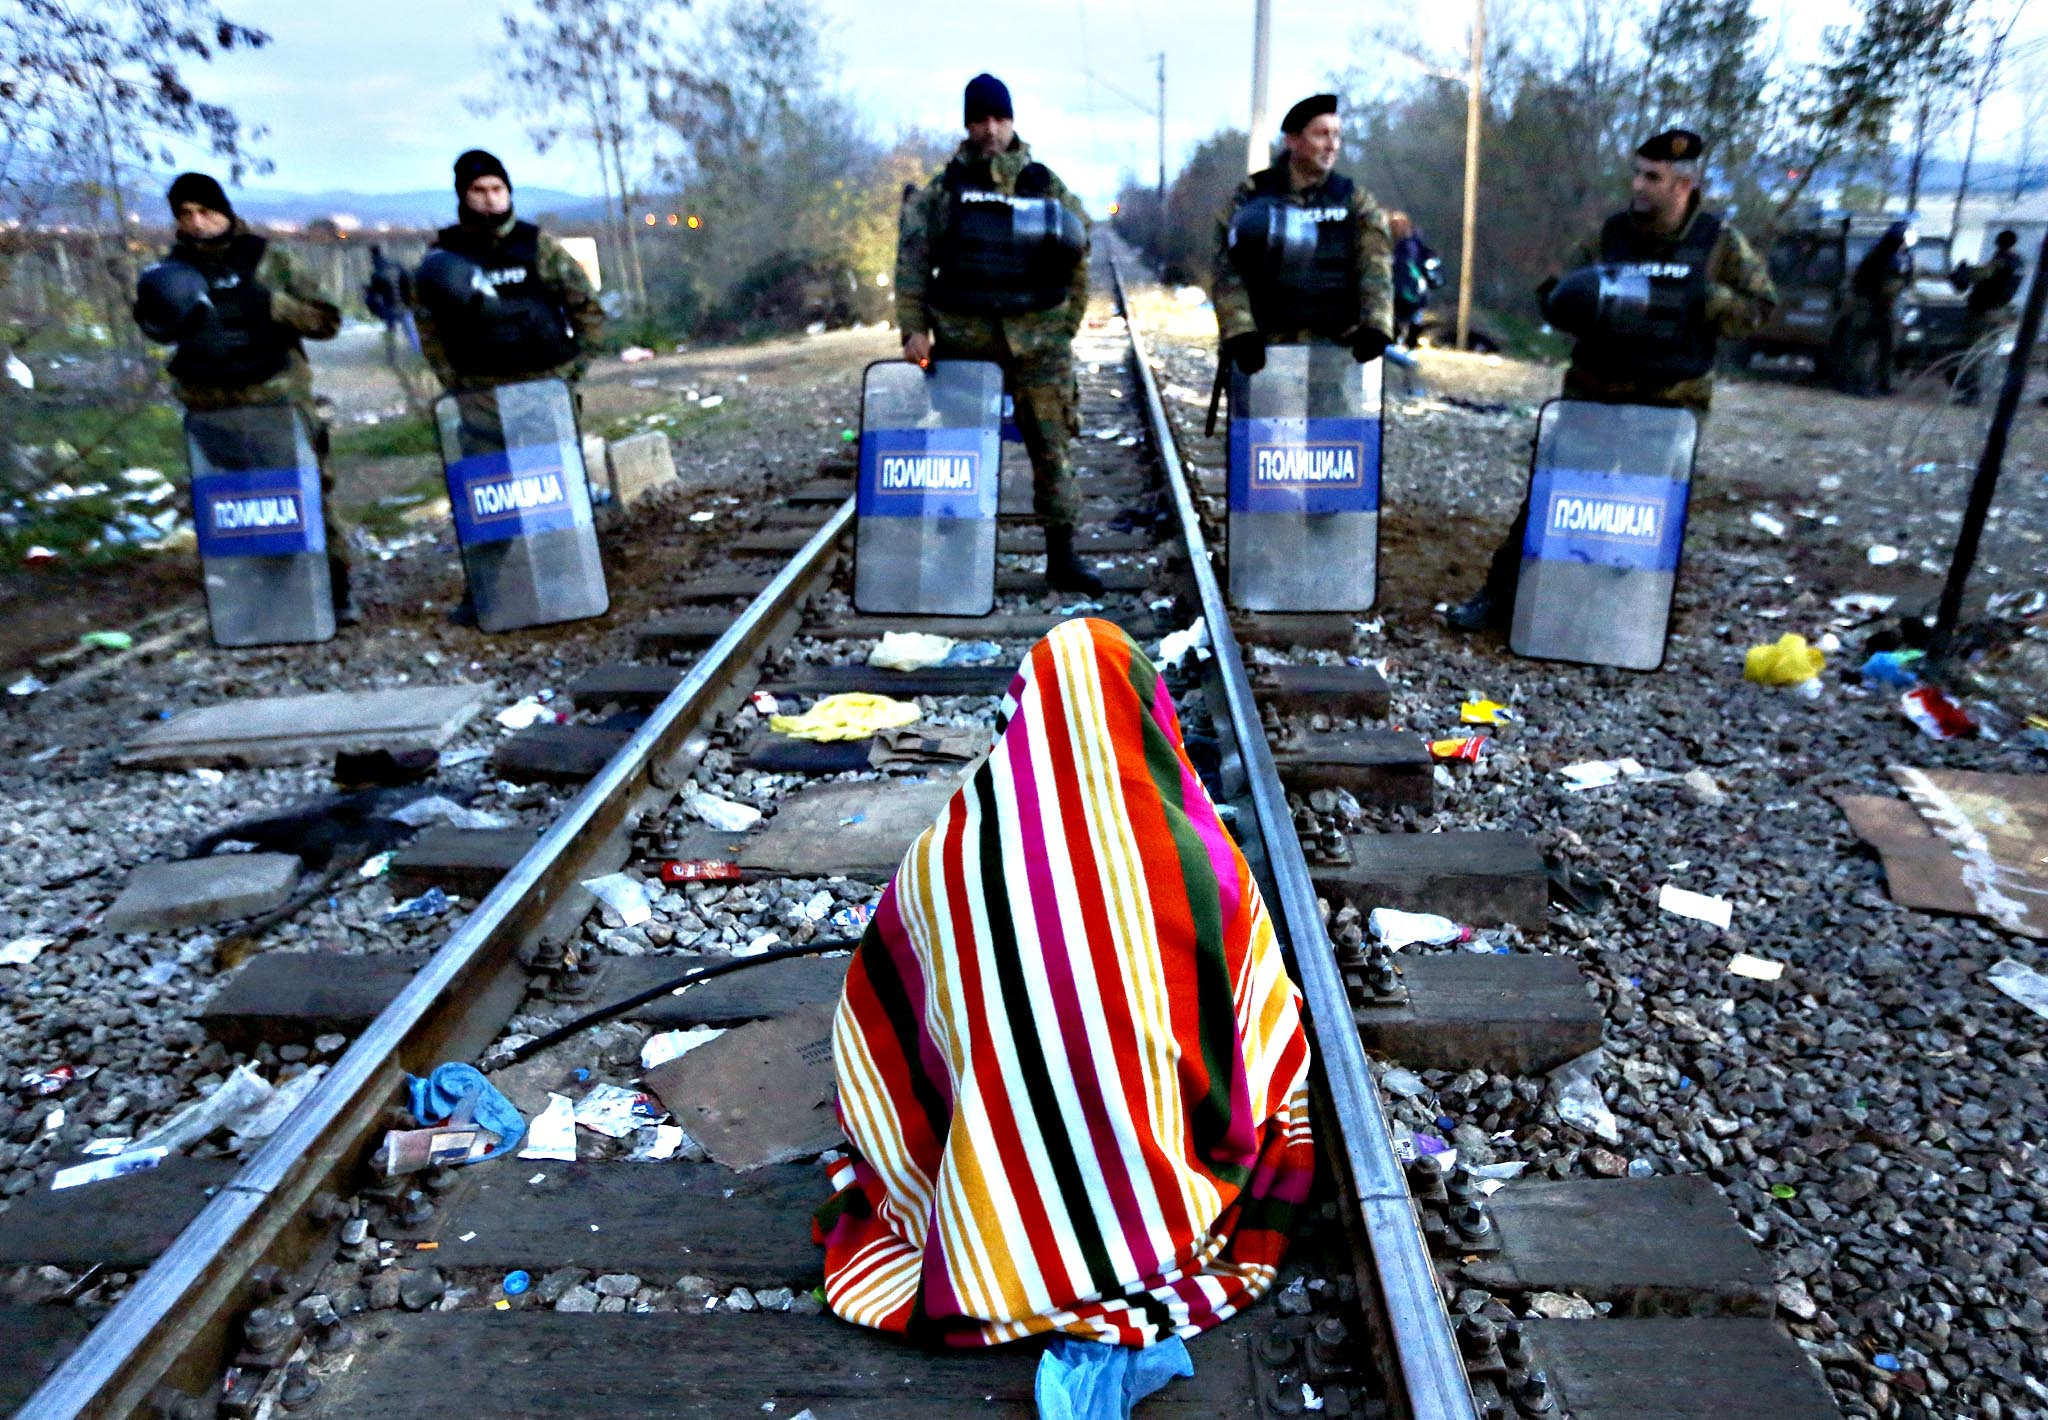 Stranded Iranian migrant Hamid, 34, an electrical engineer from the Iranian town of Sanandij sits on rail tucks in front of Macedonian riot police guarding the borderline between Greece and Macedonia near the Greek village of Idomeni November 23, 2015. Hamid and a dozen other Iranian migrants are on hunger-strike for a second day. Balkan countries have begun filtering the flow of migrants to Europe, granting passage to those fleeing conflict in the Middle East and Afghanistan but turning back others from Africa and Asia